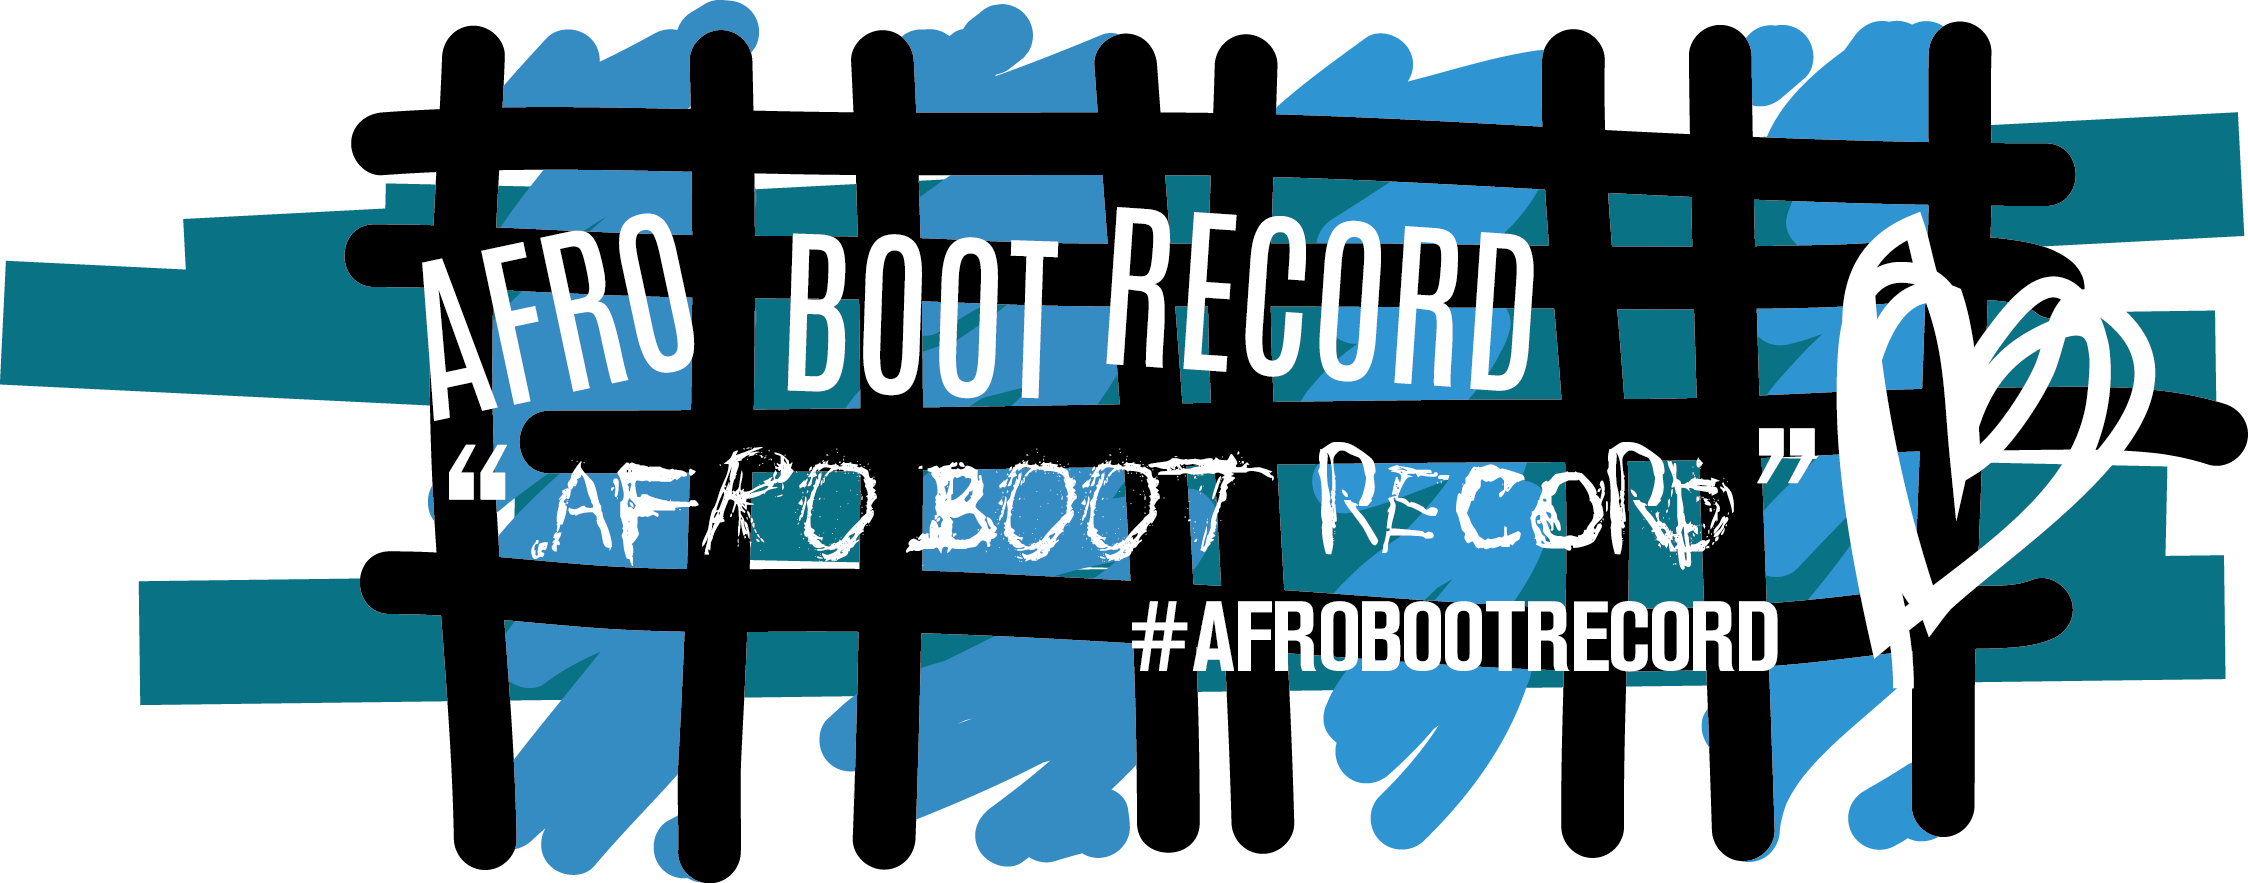 .AFRO BOOT RECORD